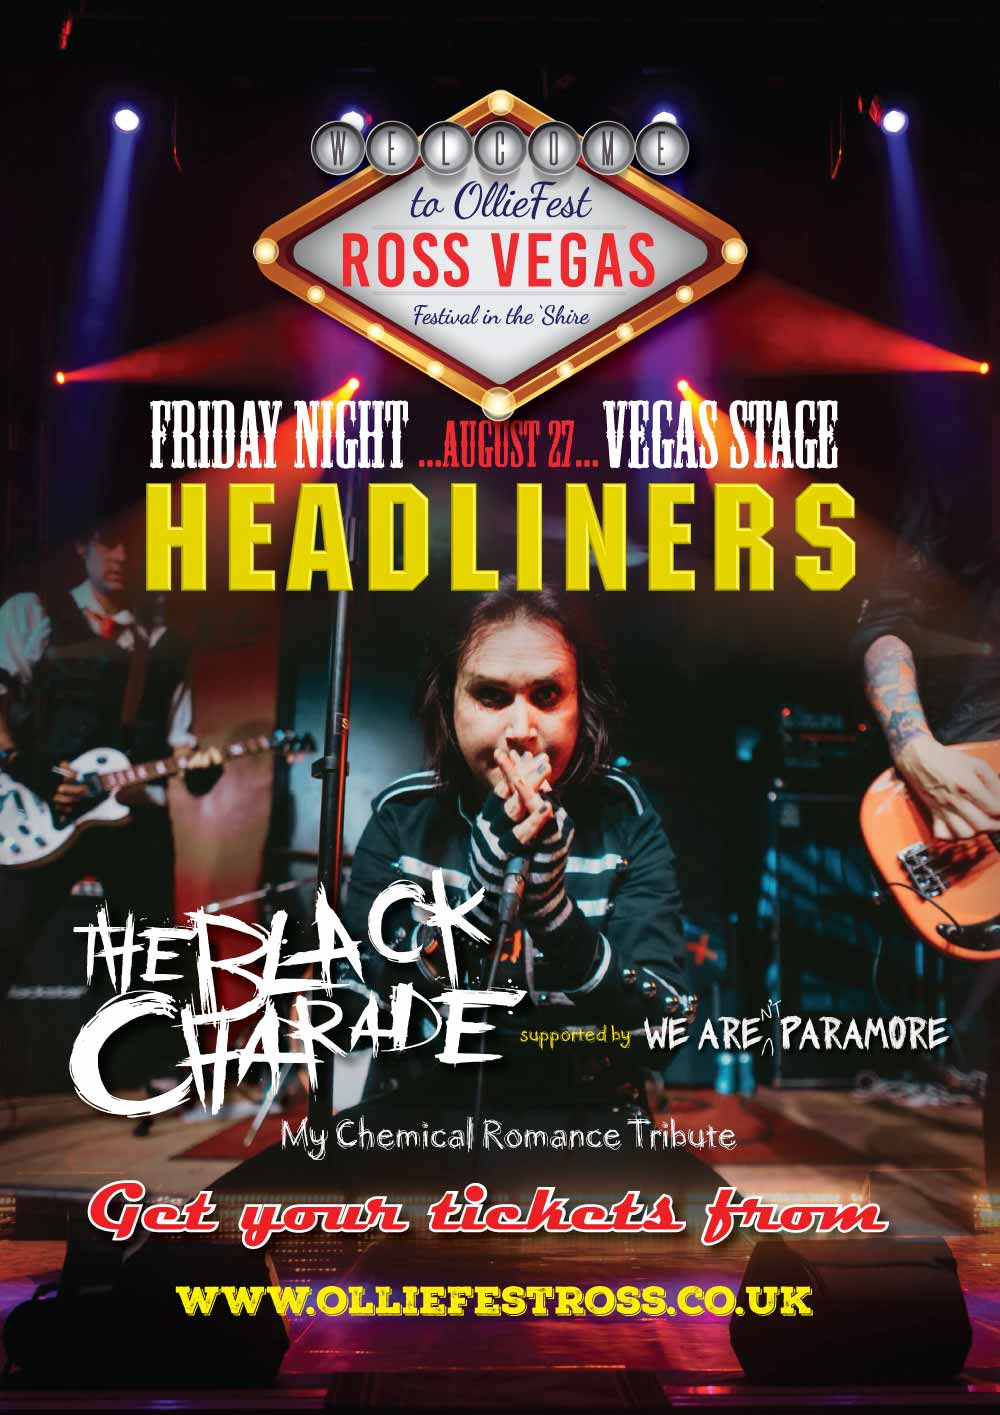 The Black Charade Headlining the Vegas Stage at OllieFest on Friday August 27th, 2021